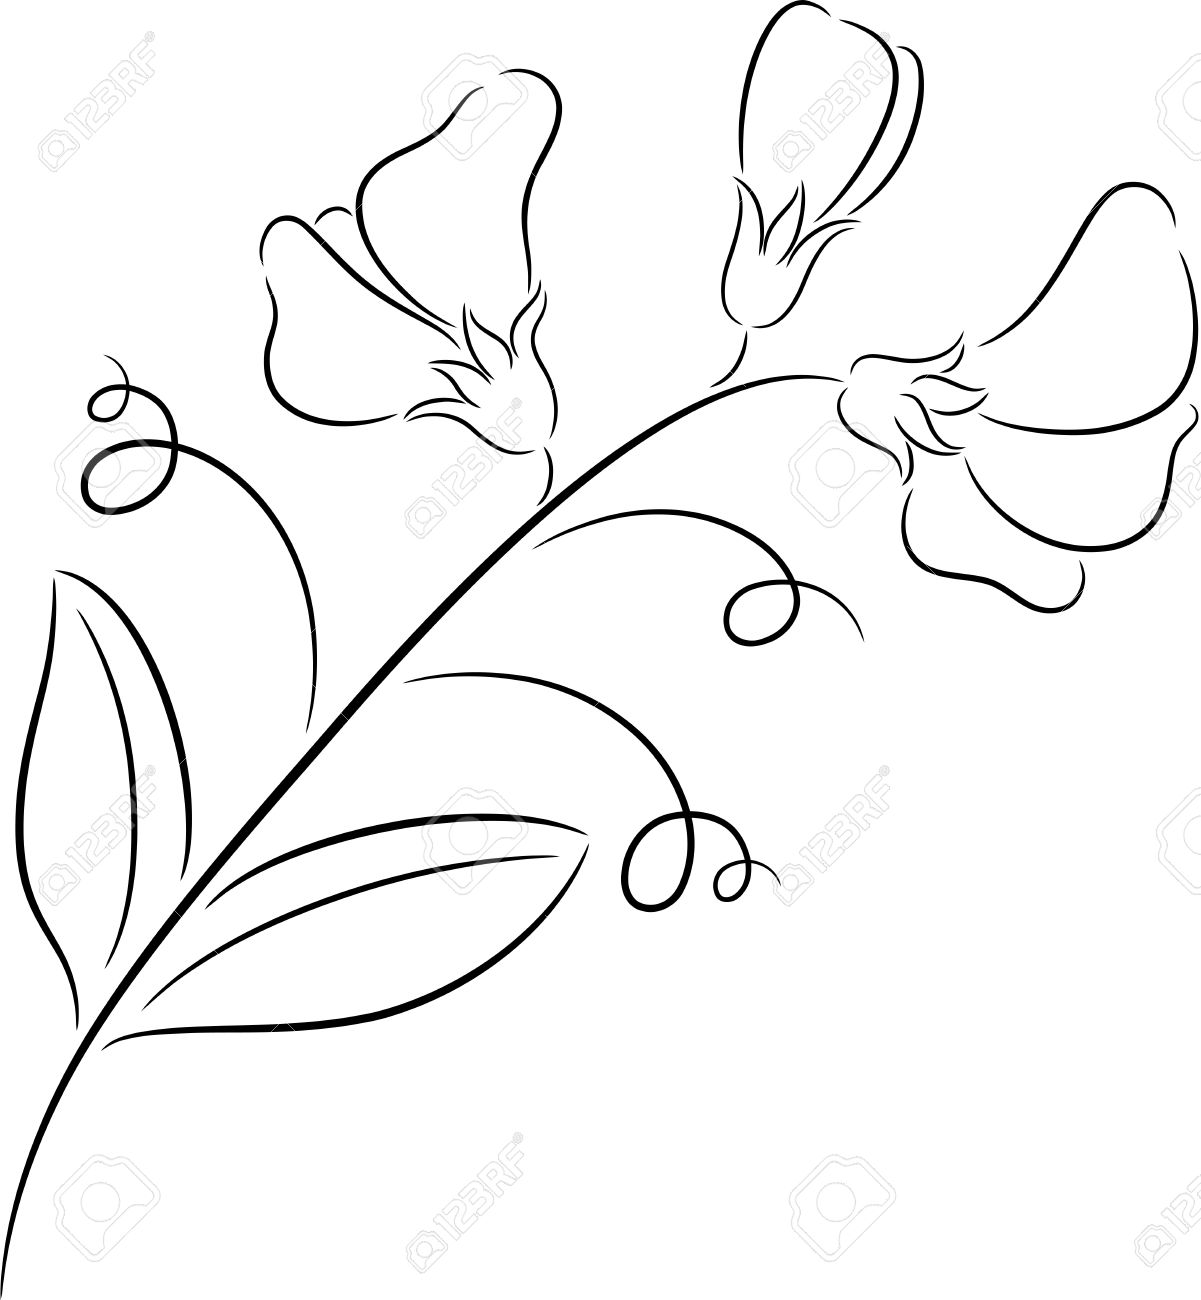 Sweet Pea Flower Drawing At Getdrawings Free For Personal Use